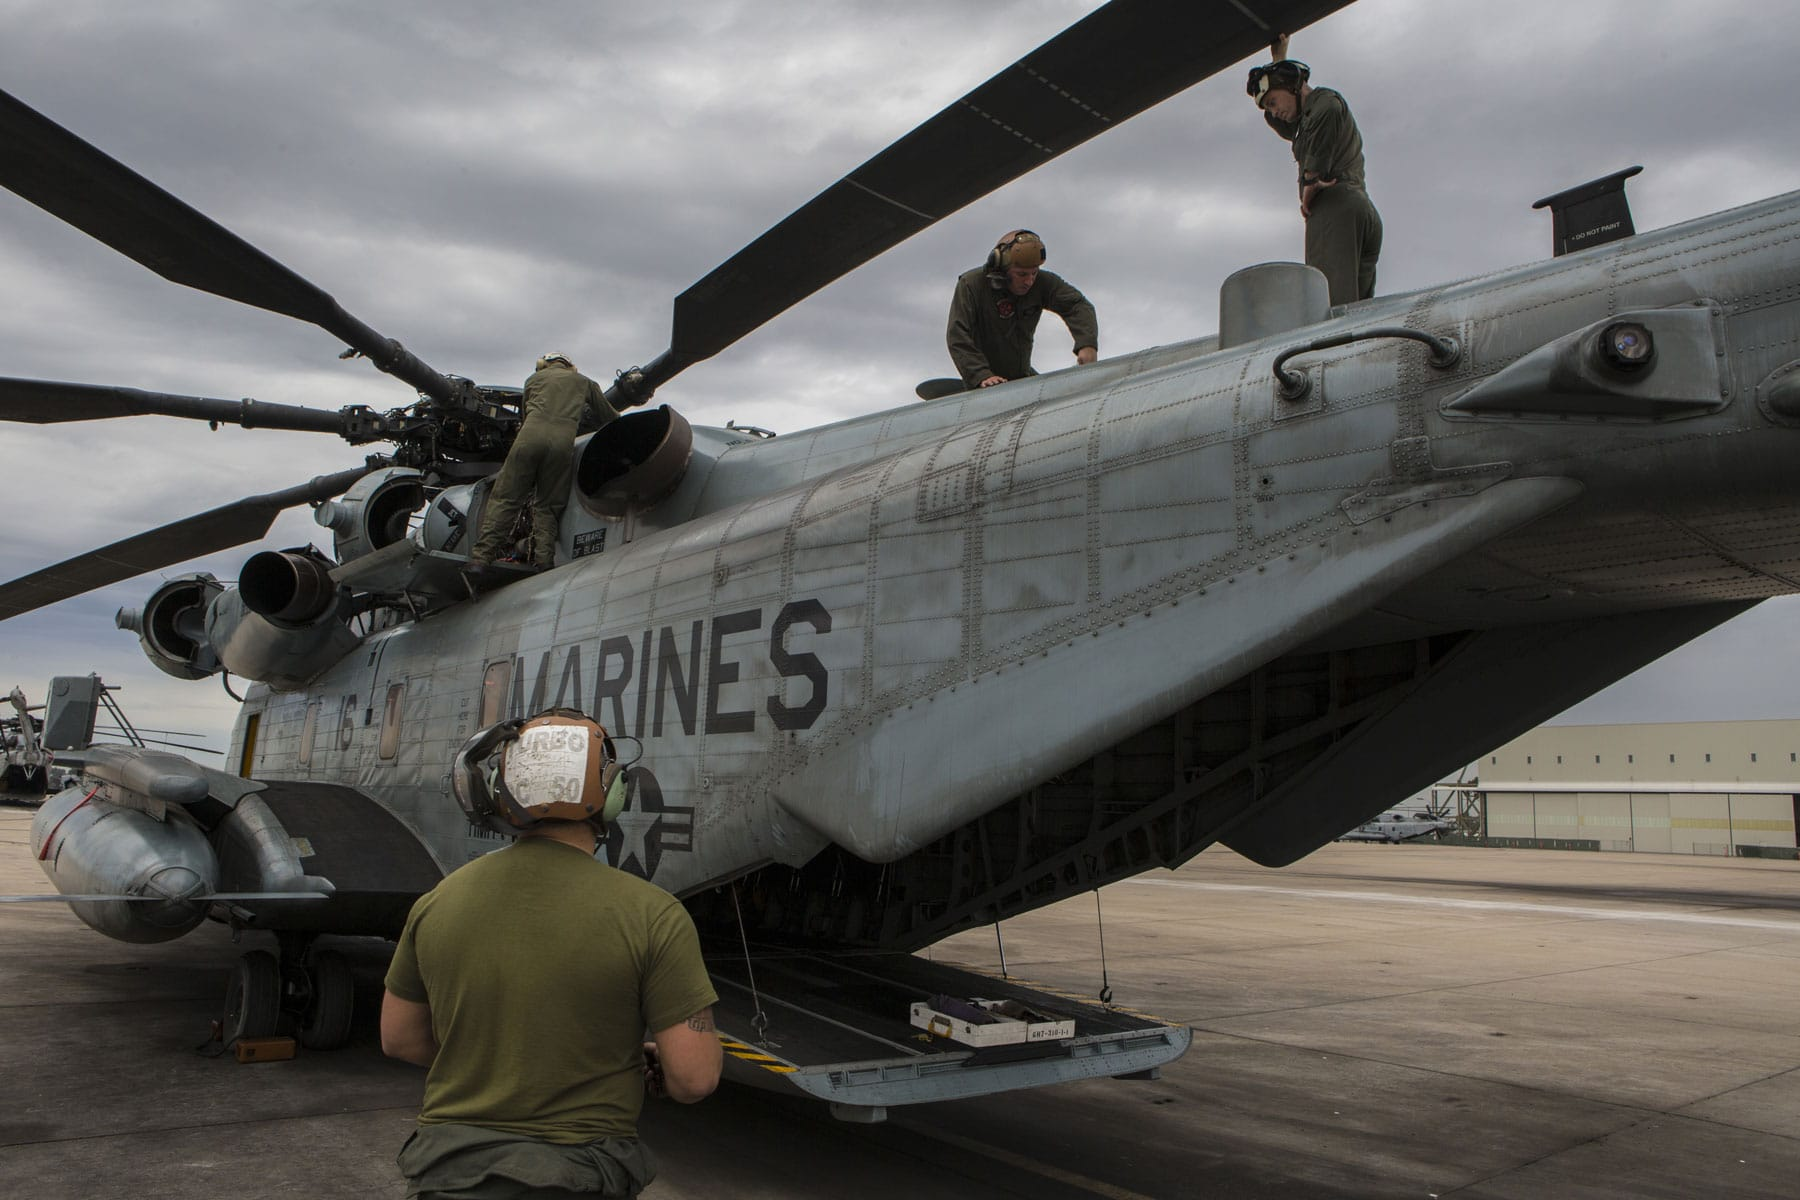 Maintainers with Marine Heavy Helicopter Squadron (HMH) 361 conduct a pre-flight check of a CH-53E Super Stallion at Marine Corps Air Station Miramar, California.